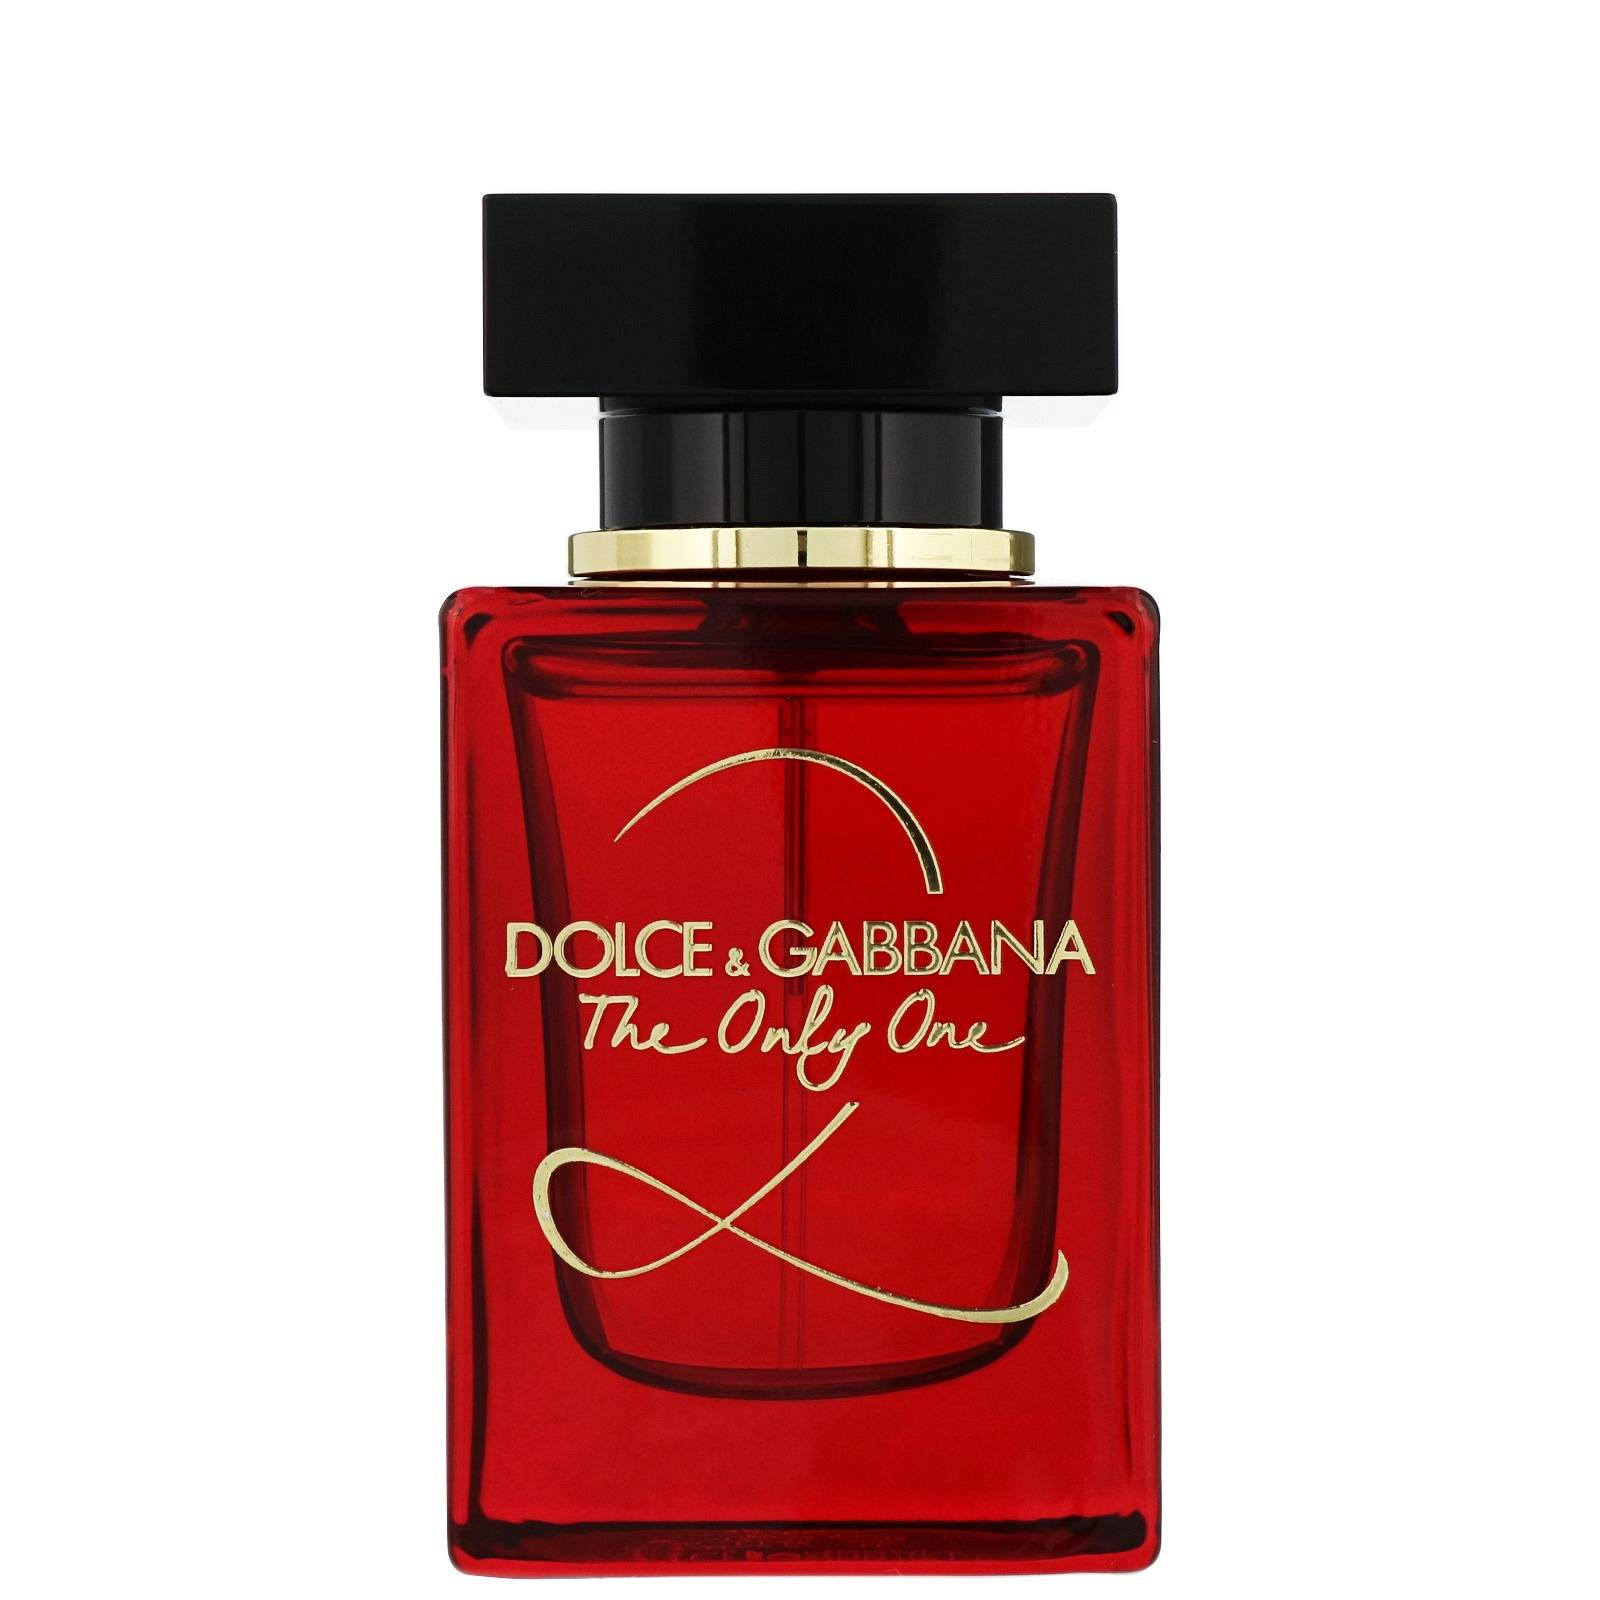 Dolce&Gabbana The Only One 2 50ml Eau de Parfum Spray